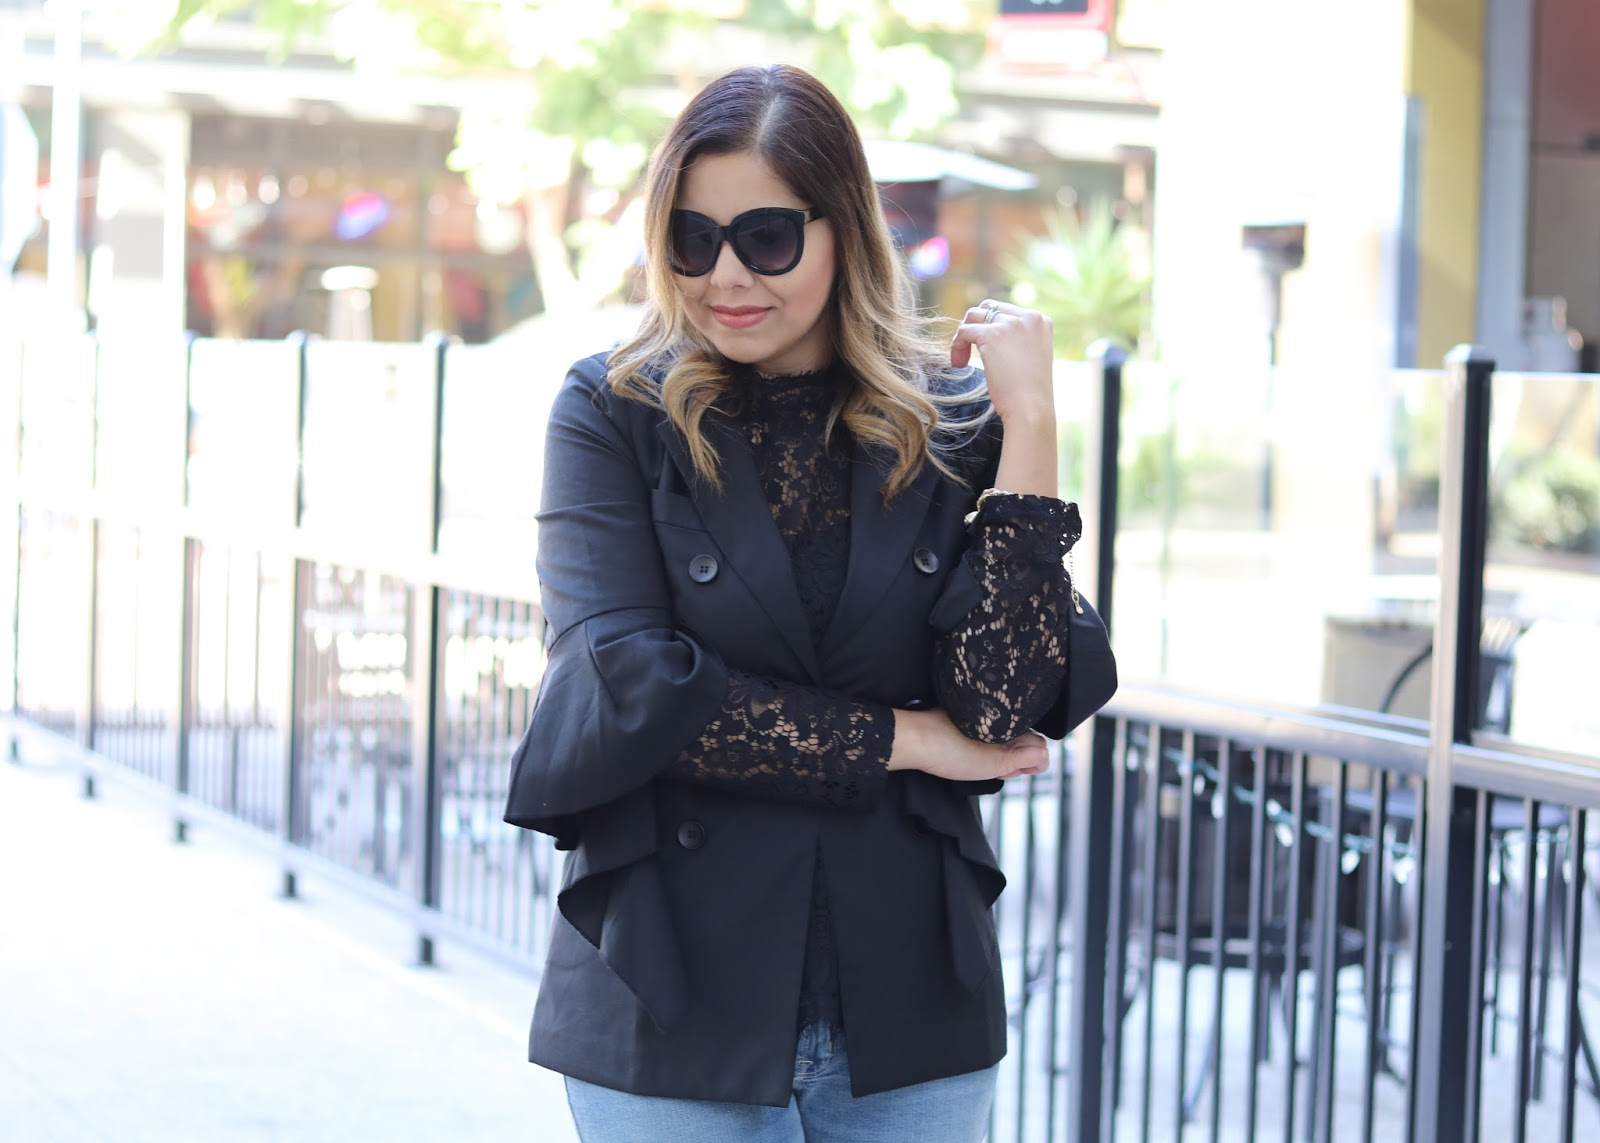 Chicwish blazer with frilly sleeves, lace top from H&M, elegant lace outfit